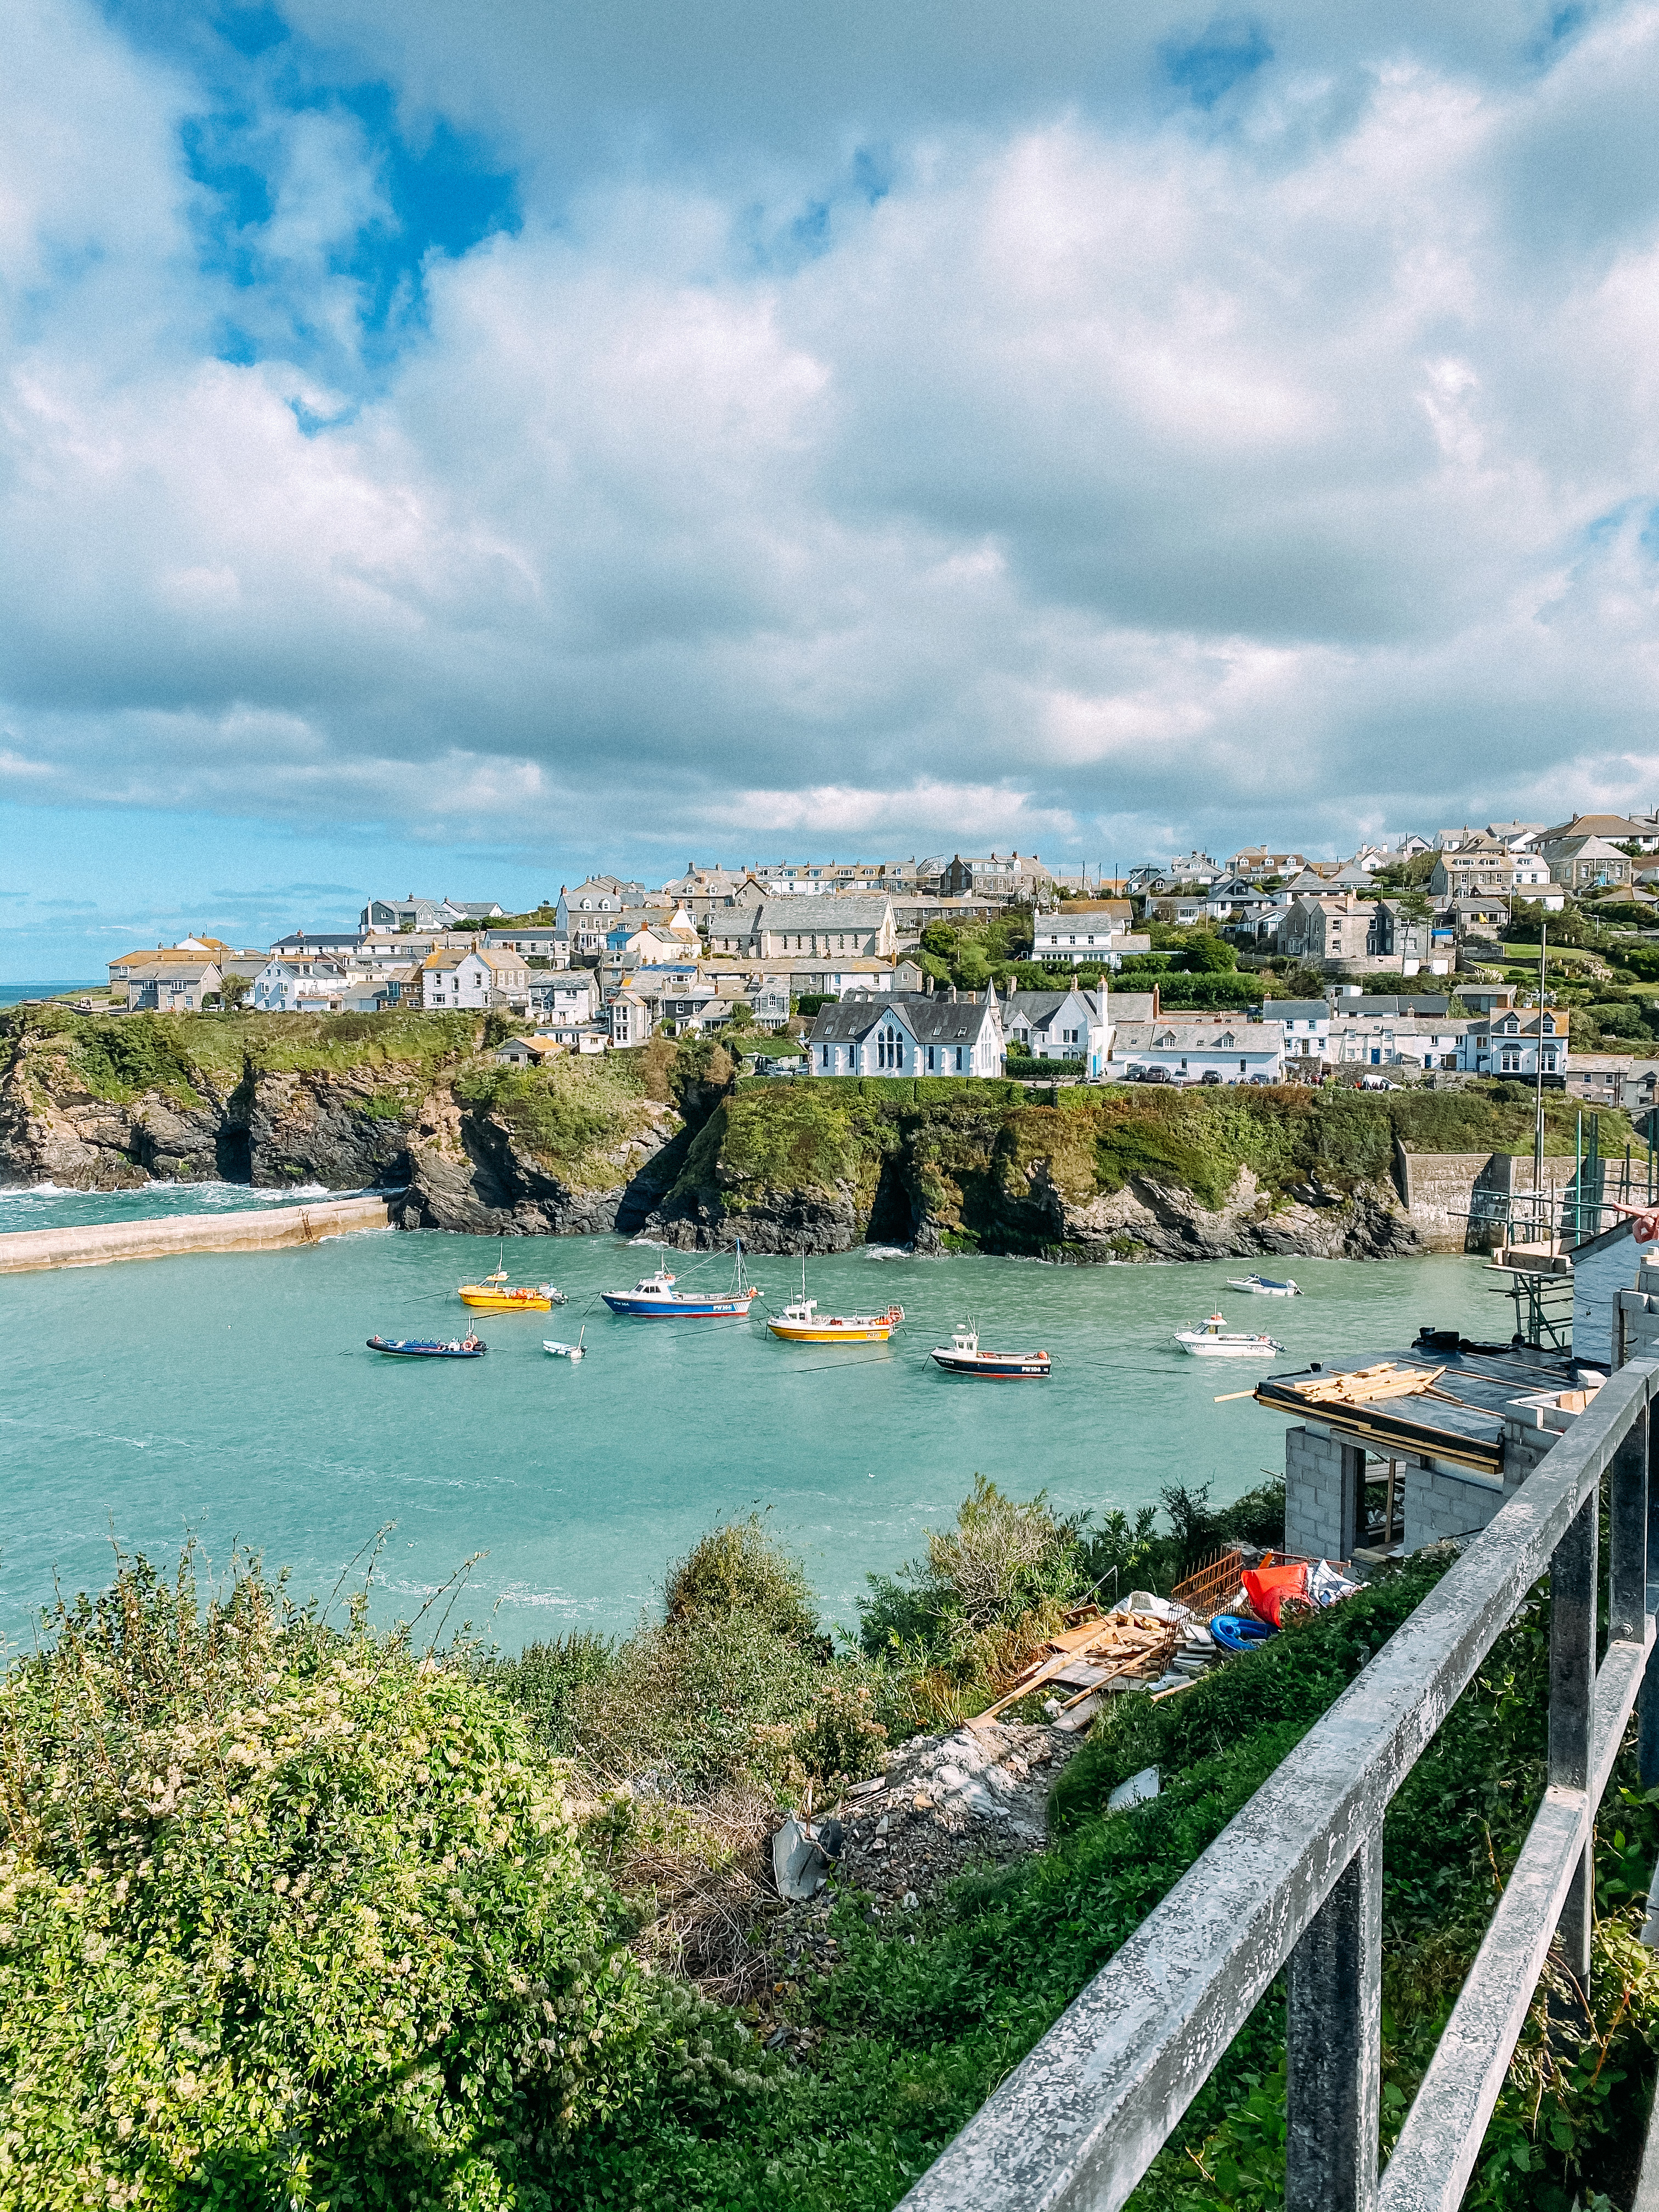 Port Issac in North Cornwall